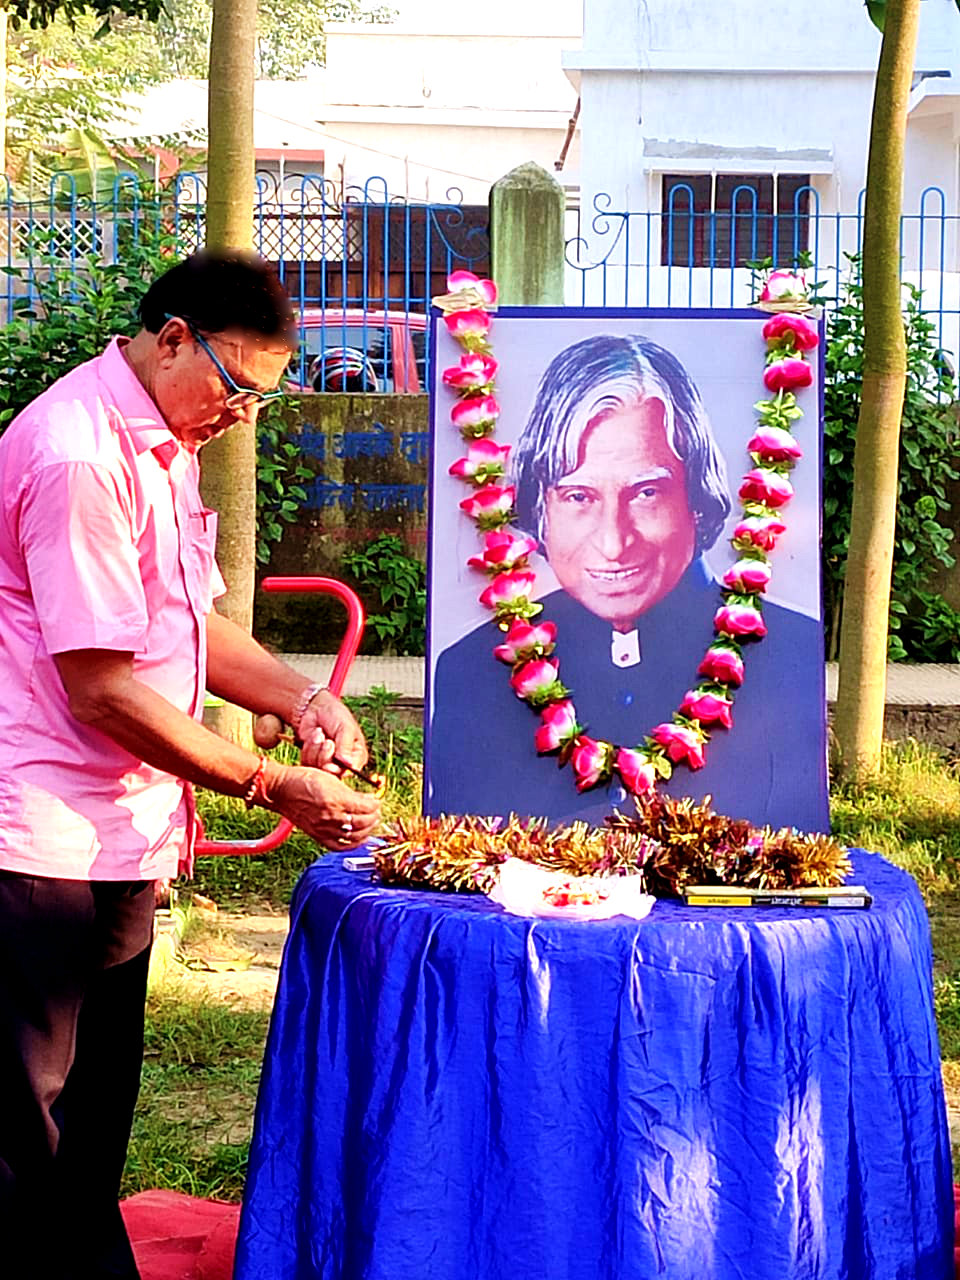 Samajsevi Dr.Bhupendra Madhepuri paying his tribute to Bharat Ratna DR.APJ Abdul Kalam on an auspicious occasion of his 89th Birth Anniversary at Dr.APJ Abdul Kalam Park,Madhepura.